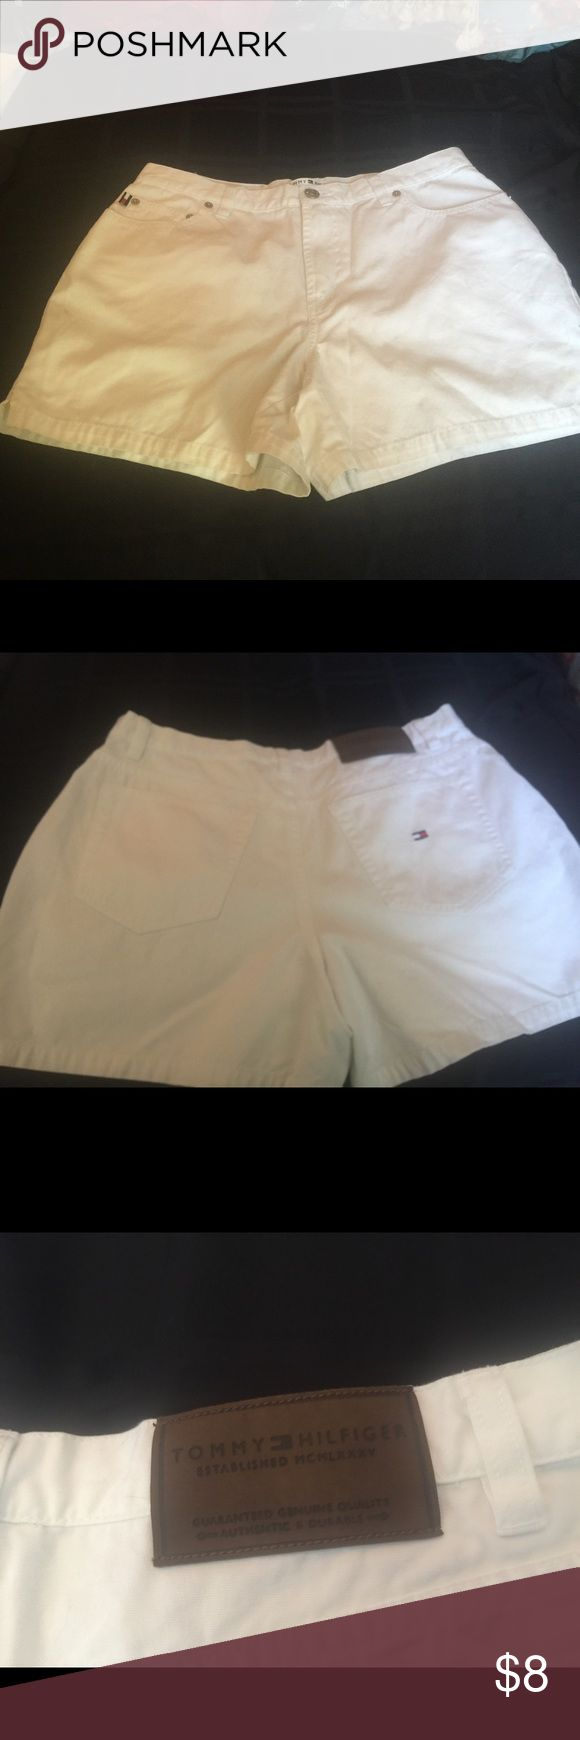 Sale Tommy Hilfiger Size 6 White Denim Shorts. Get ready for spring with these cute white denim Tommy Hilfiger jean shorts with 3-3.5 Inseam in size 6.   I have another pair of Tommy Hilfiger shorts listed in the same style only in a coral color.  These are in good condition, only worn a few times and no stains. Thanks for visiting!  Let me know if you have any questions. Tommy Hilfiger Shorts Jean Shorts